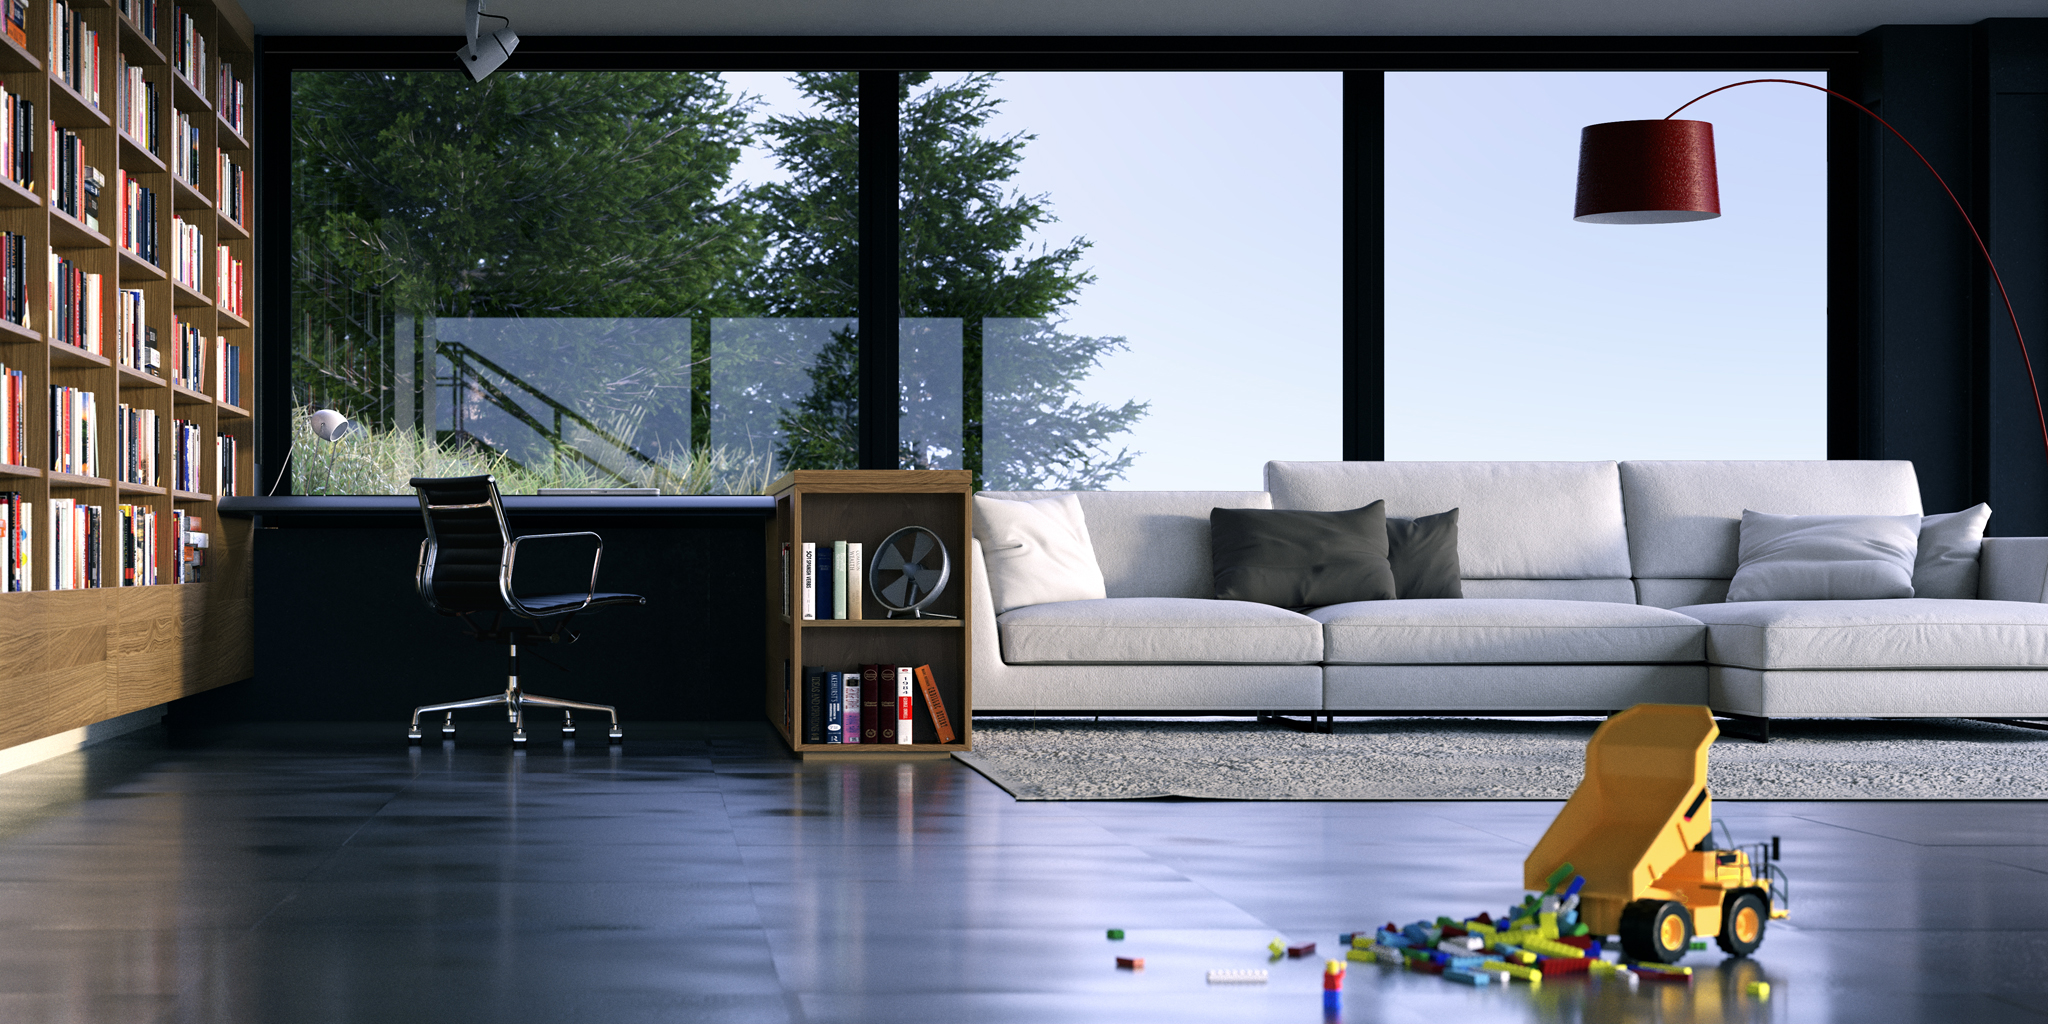 Living room with toys rendering